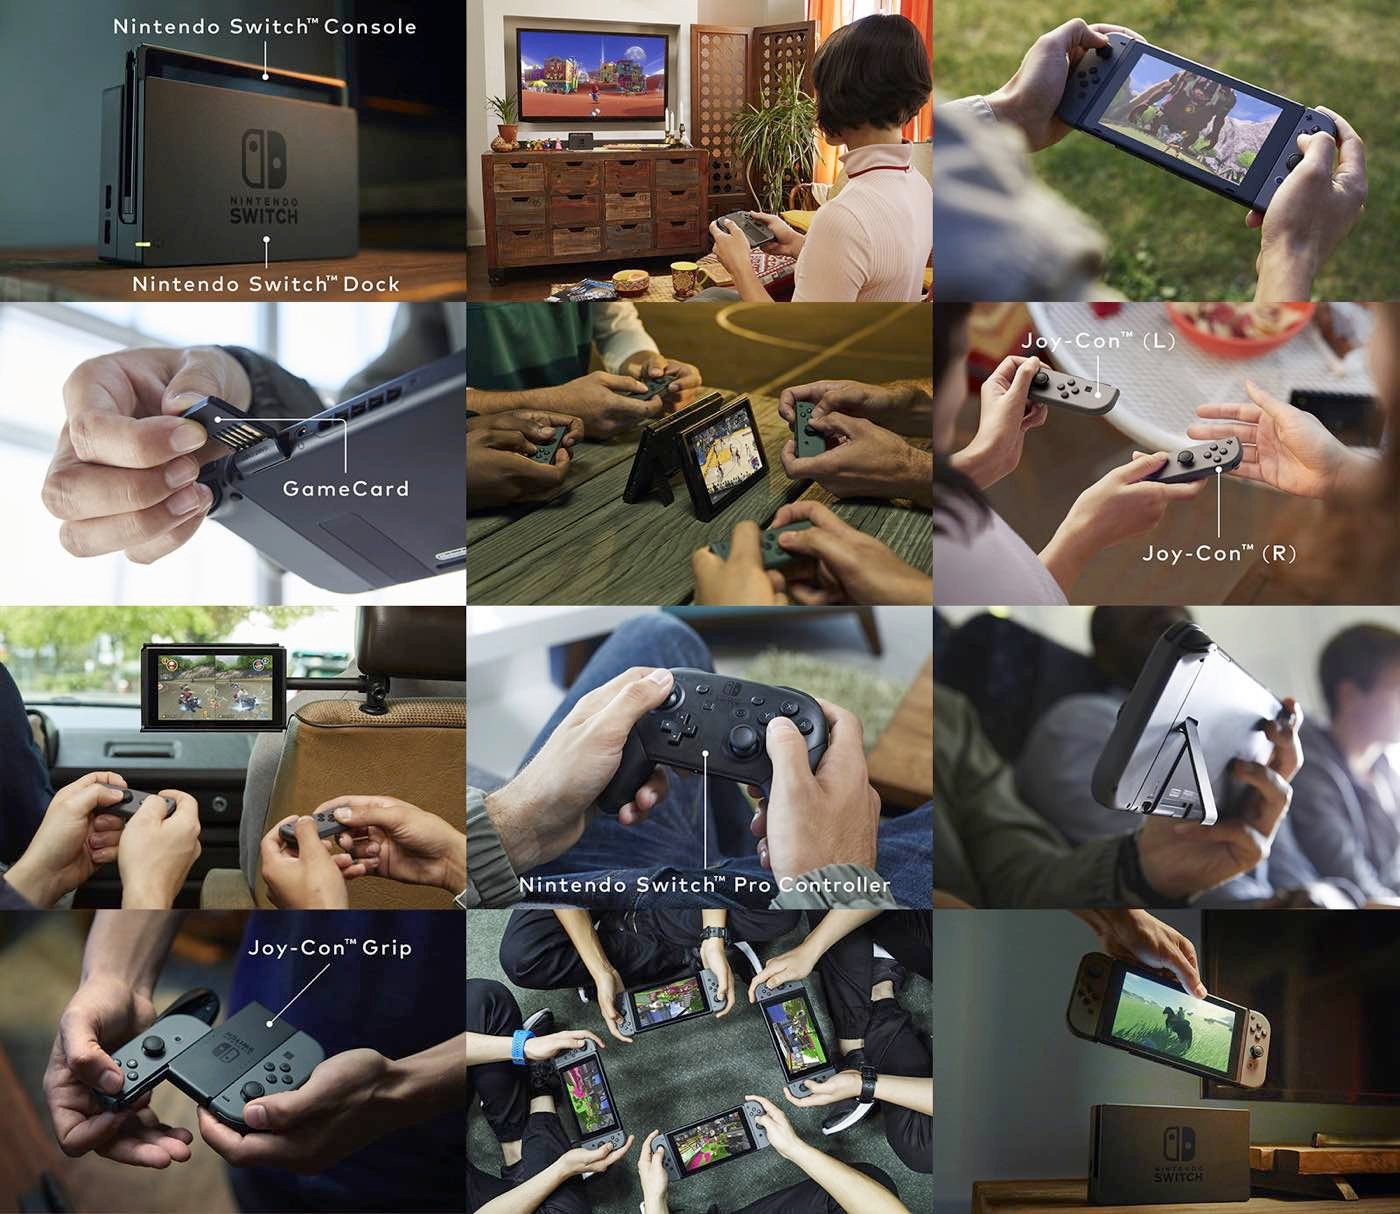 nintendo-switch-all-gamepads-achsq6njzfc